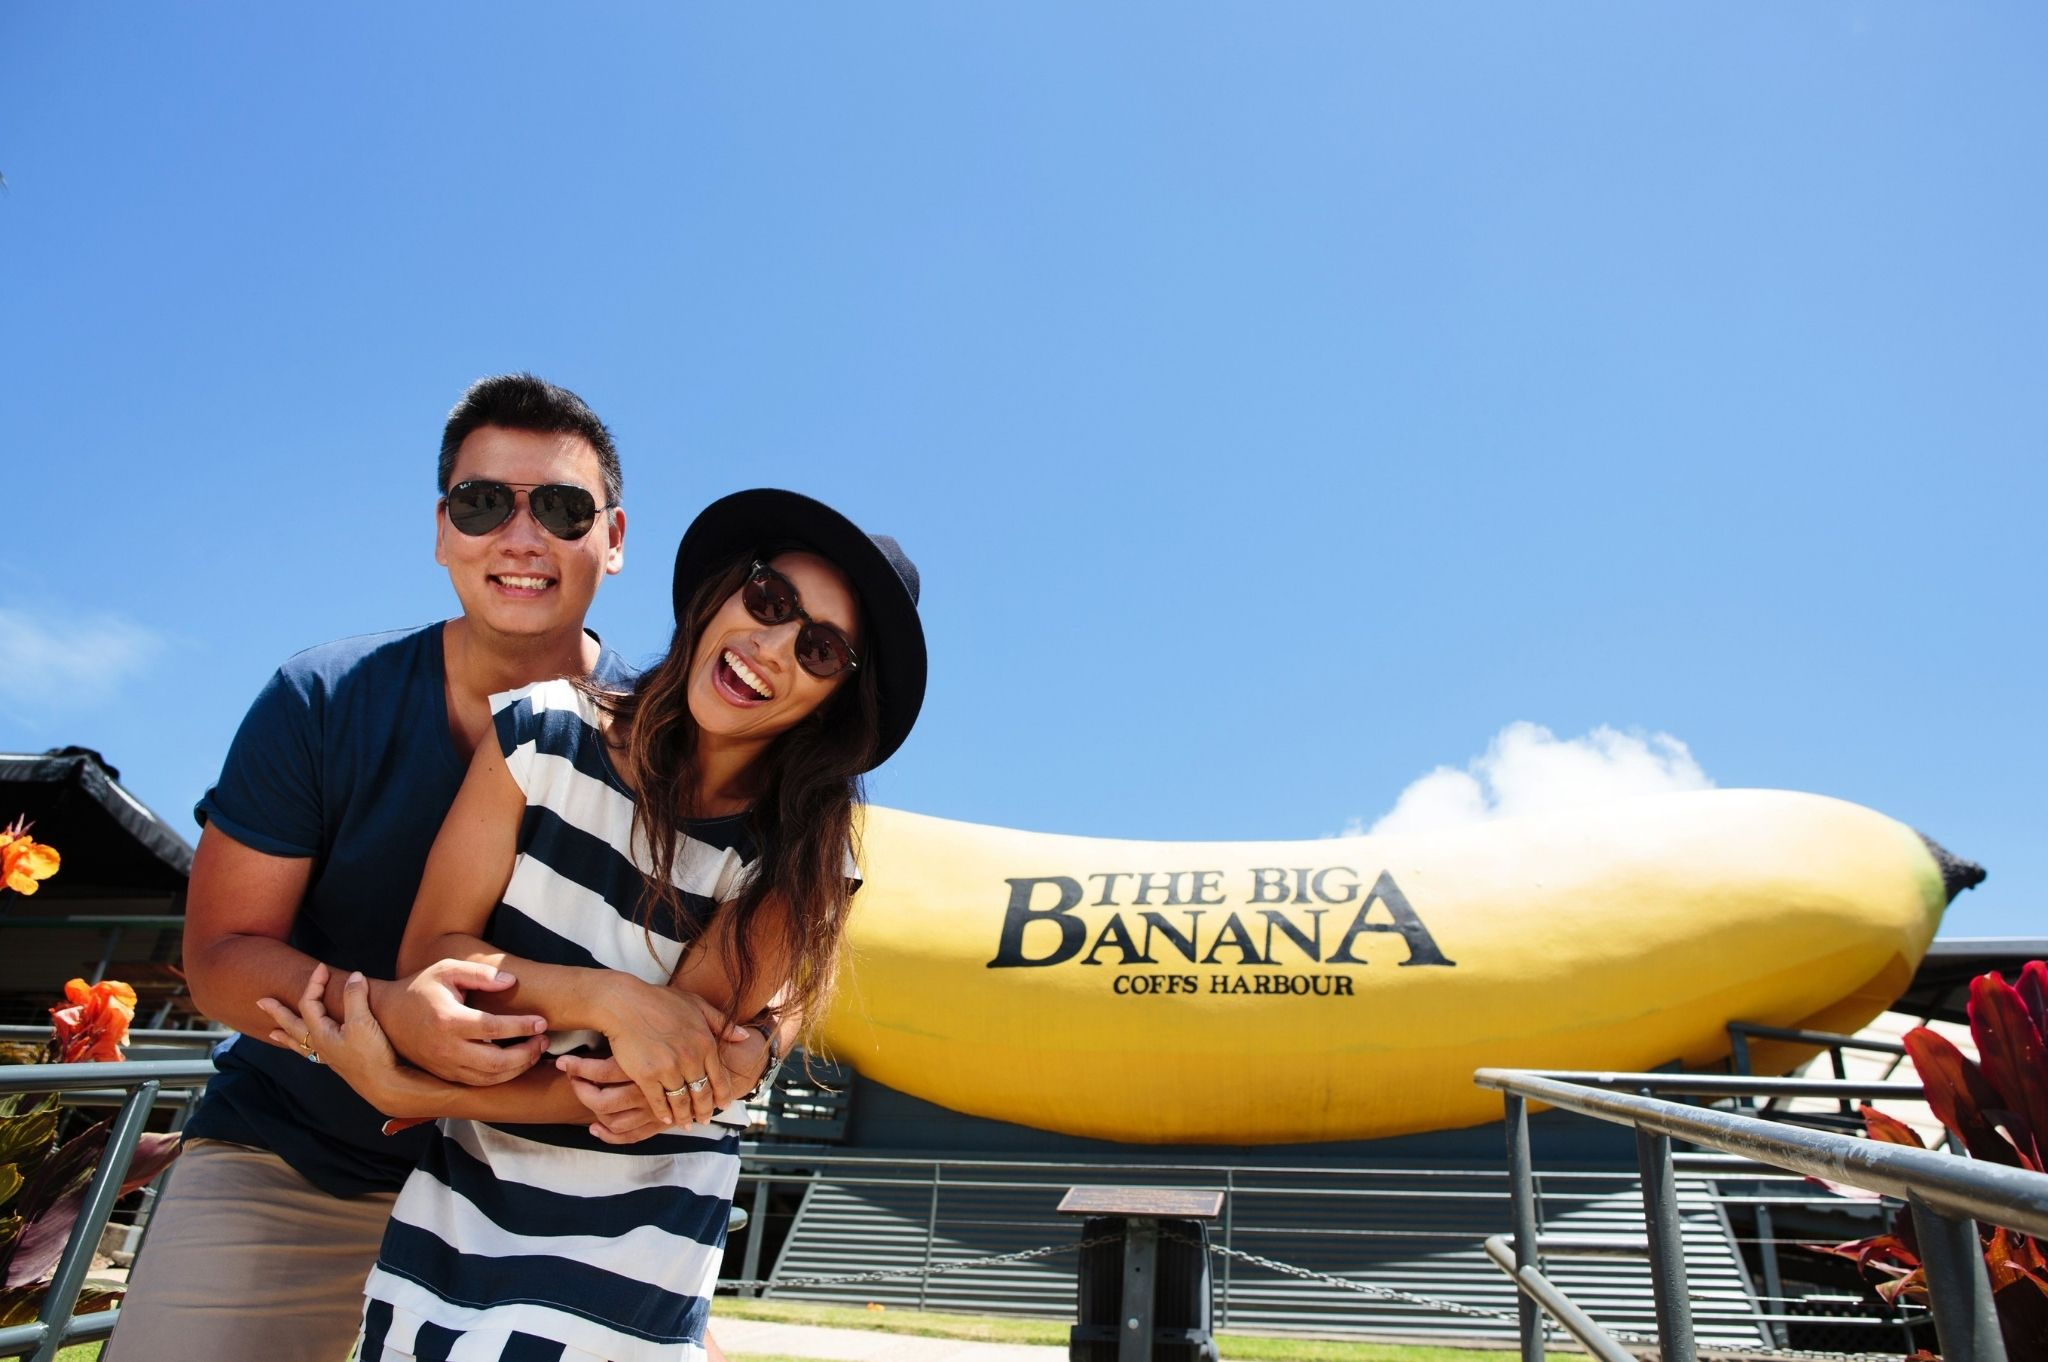 Image of a couple at The Big Banana Fun Park in Coffs Harbour NSW